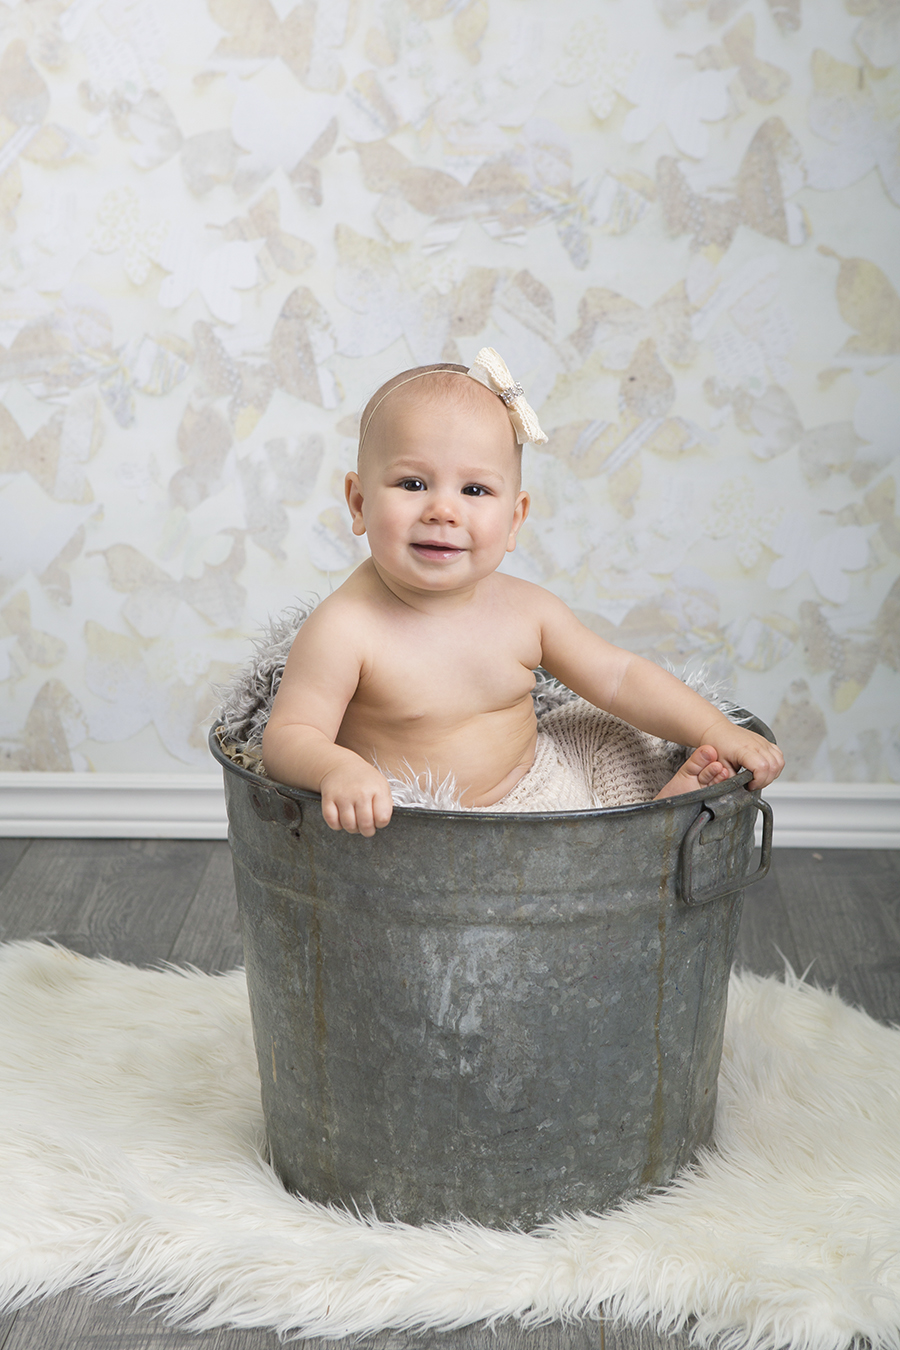 unusual baby bucket bath tub ideas bathtub for bathroom ideas. Black Bedroom Furniture Sets. Home Design Ideas